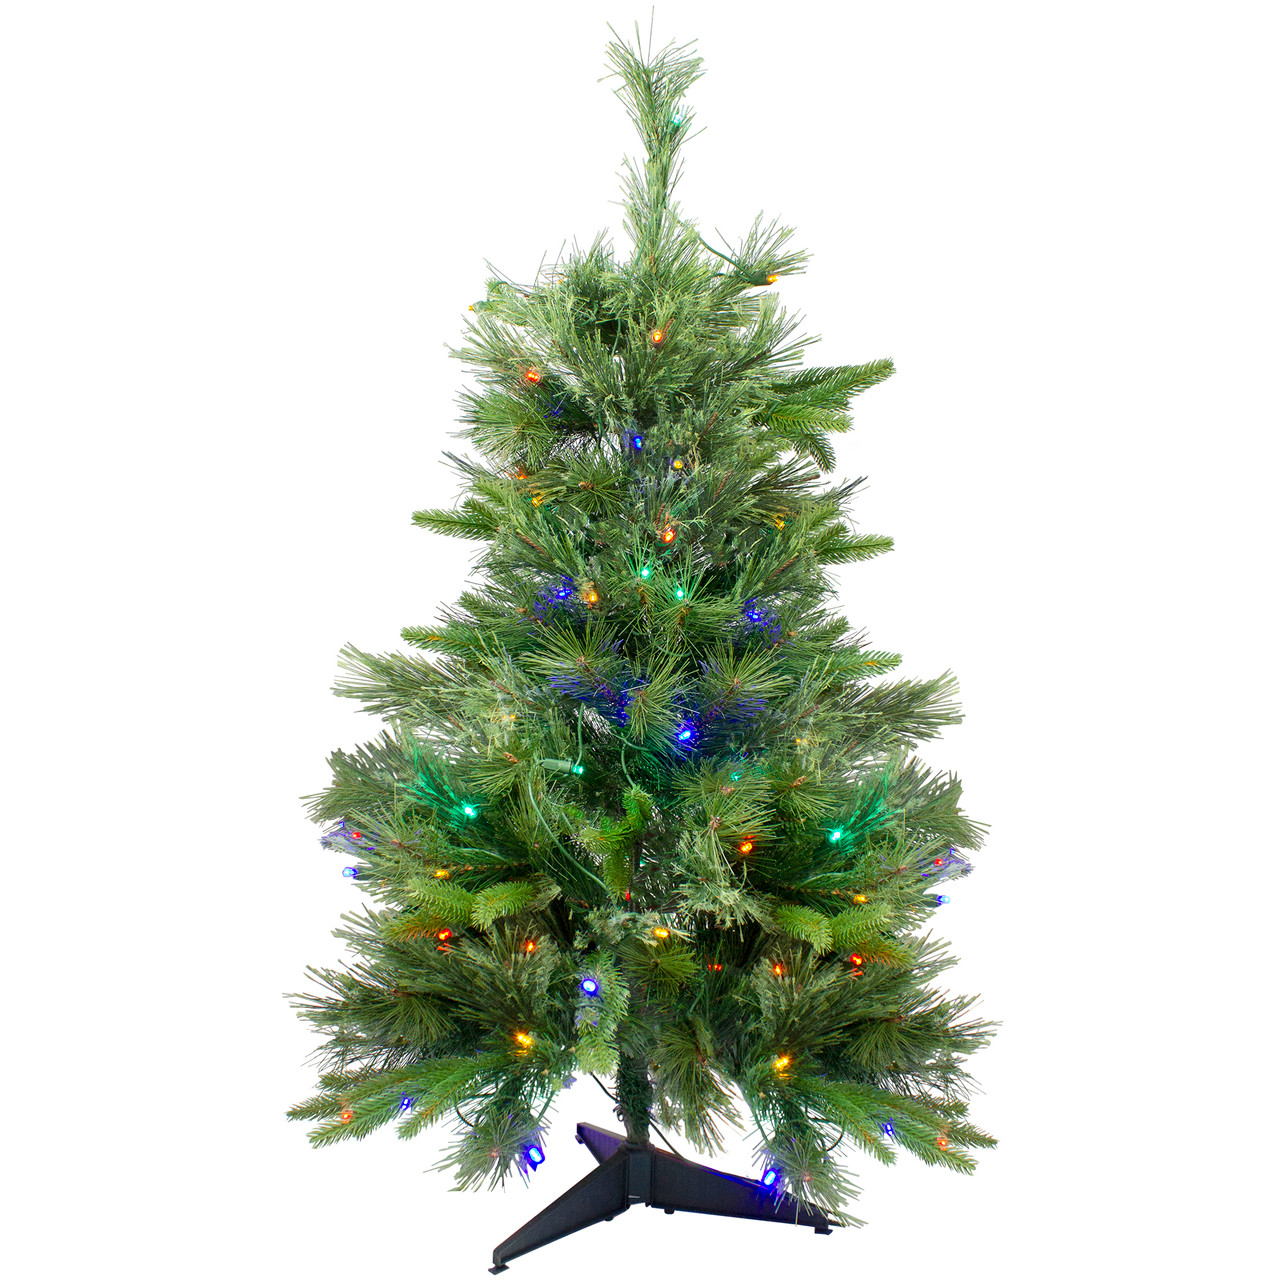 3 x 29 pre lit cashmere mixed pine full artificial christmas tree multi led lights 32265449 - Cashmere Christmas Tree